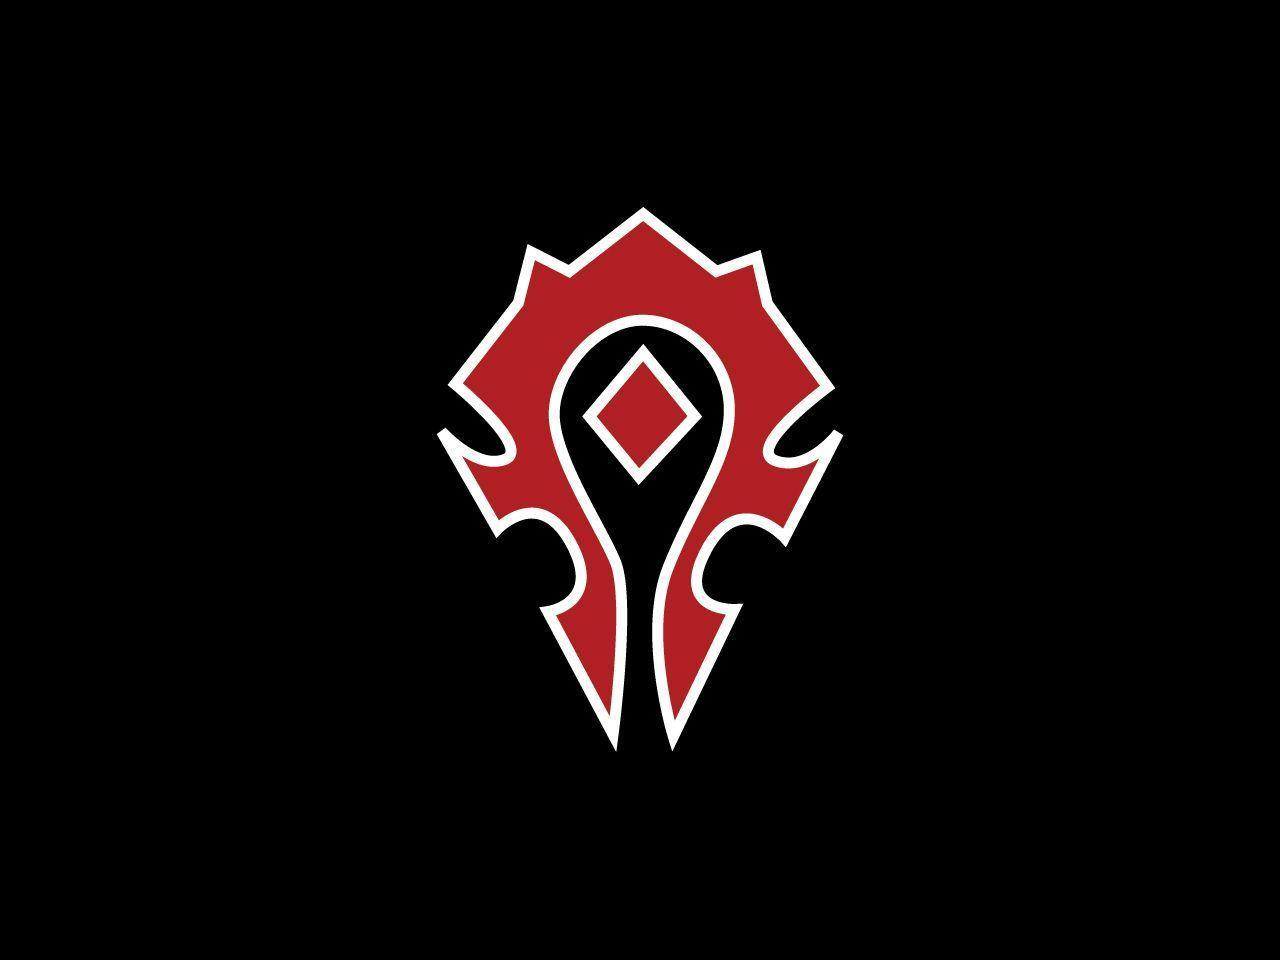 Horde Logo Wallpapers - Wallpaper Cave